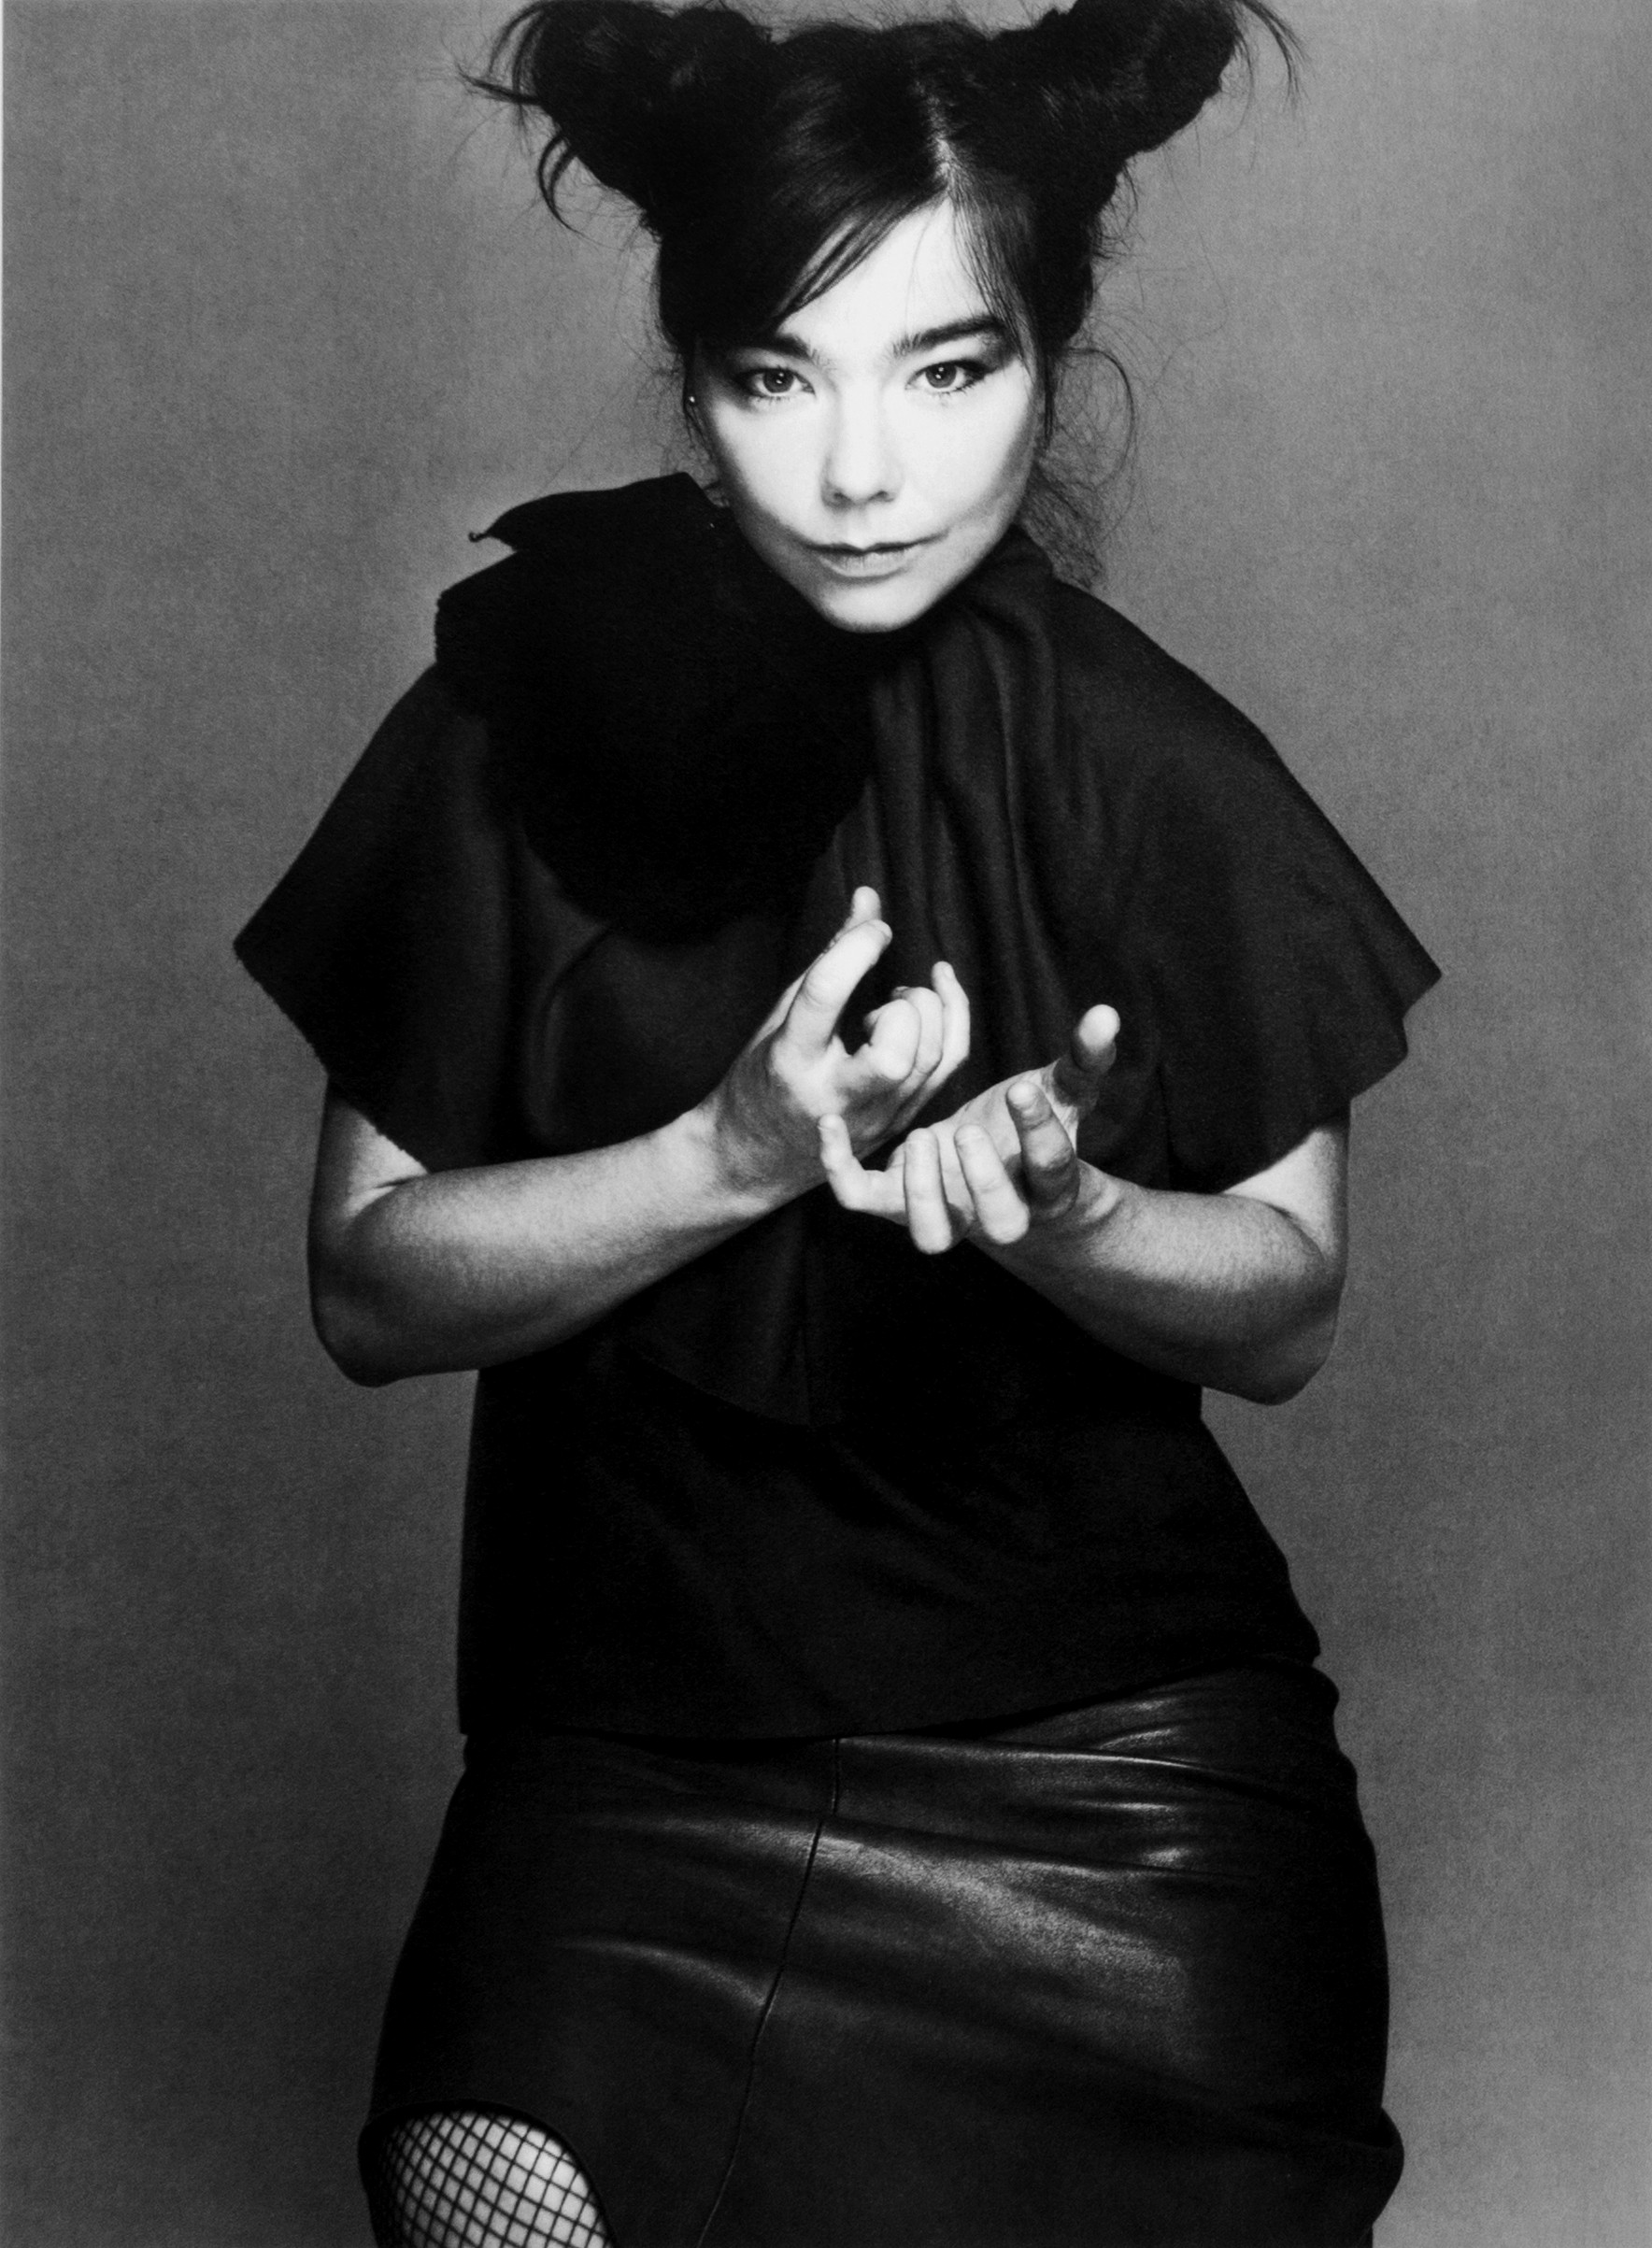 bjork-2000-richard-avedon-01b